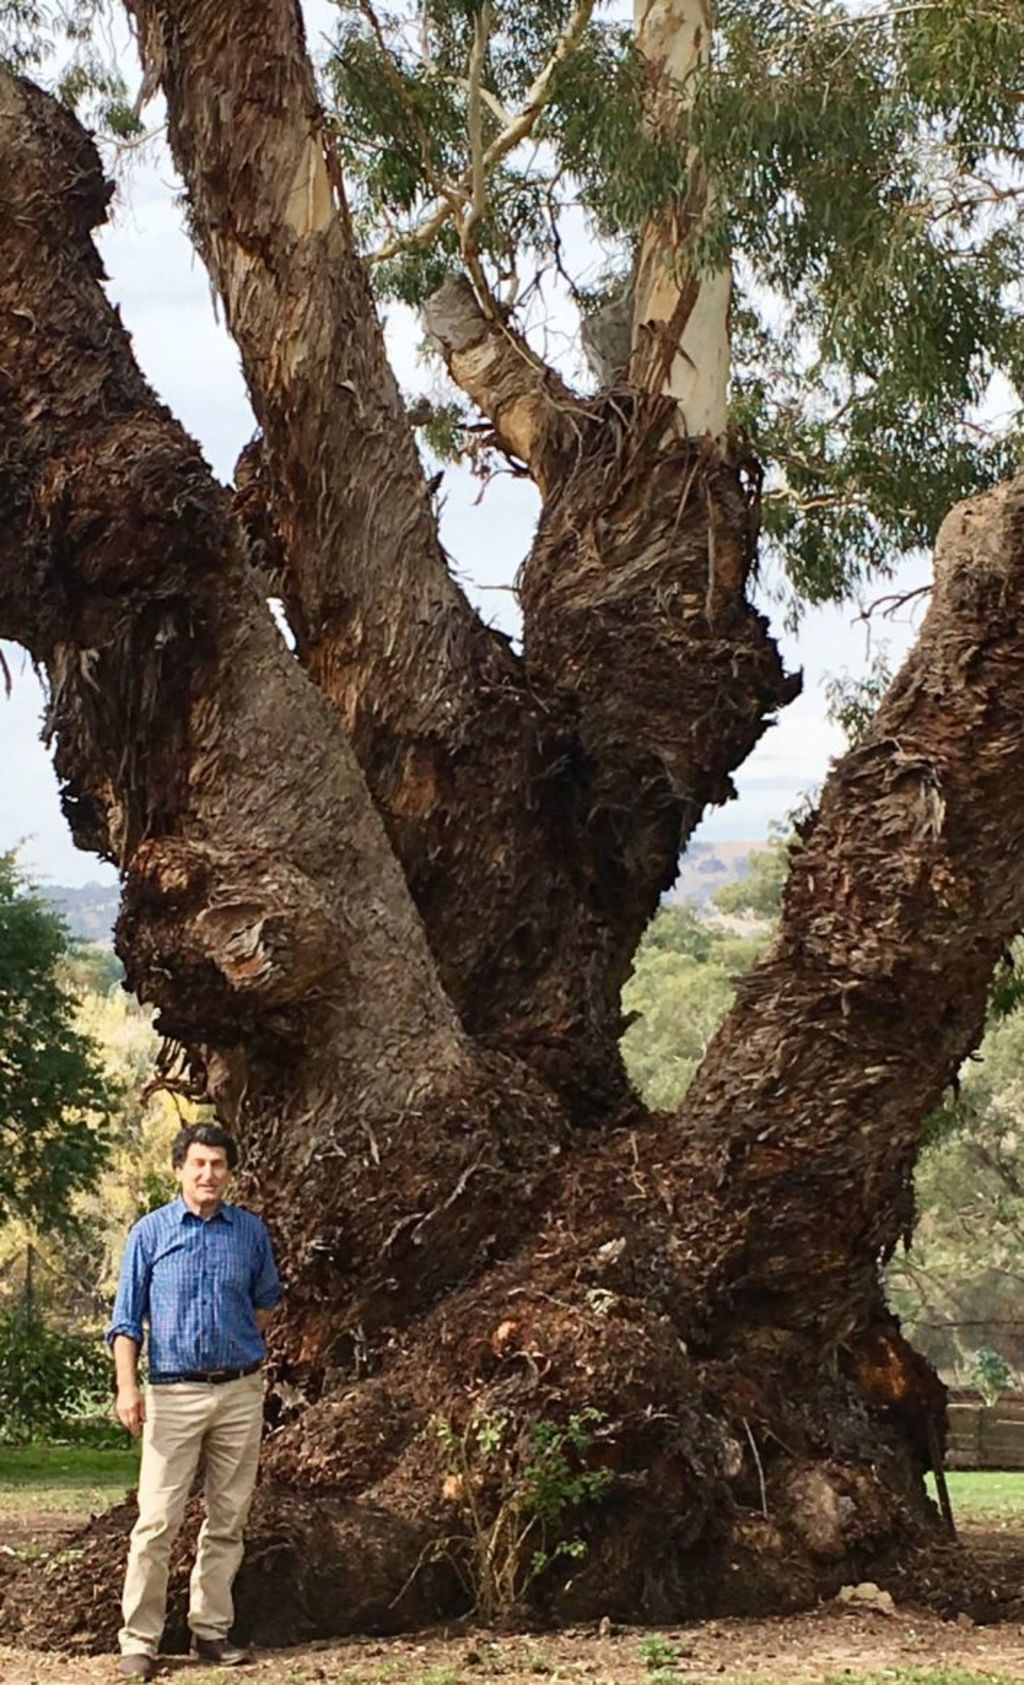 Showing the scale of the ancient Red gums on the Stratford Lodge property, agent Dominic Romeo is dwarfed by a huge specimen. Photo: Jenny Brown